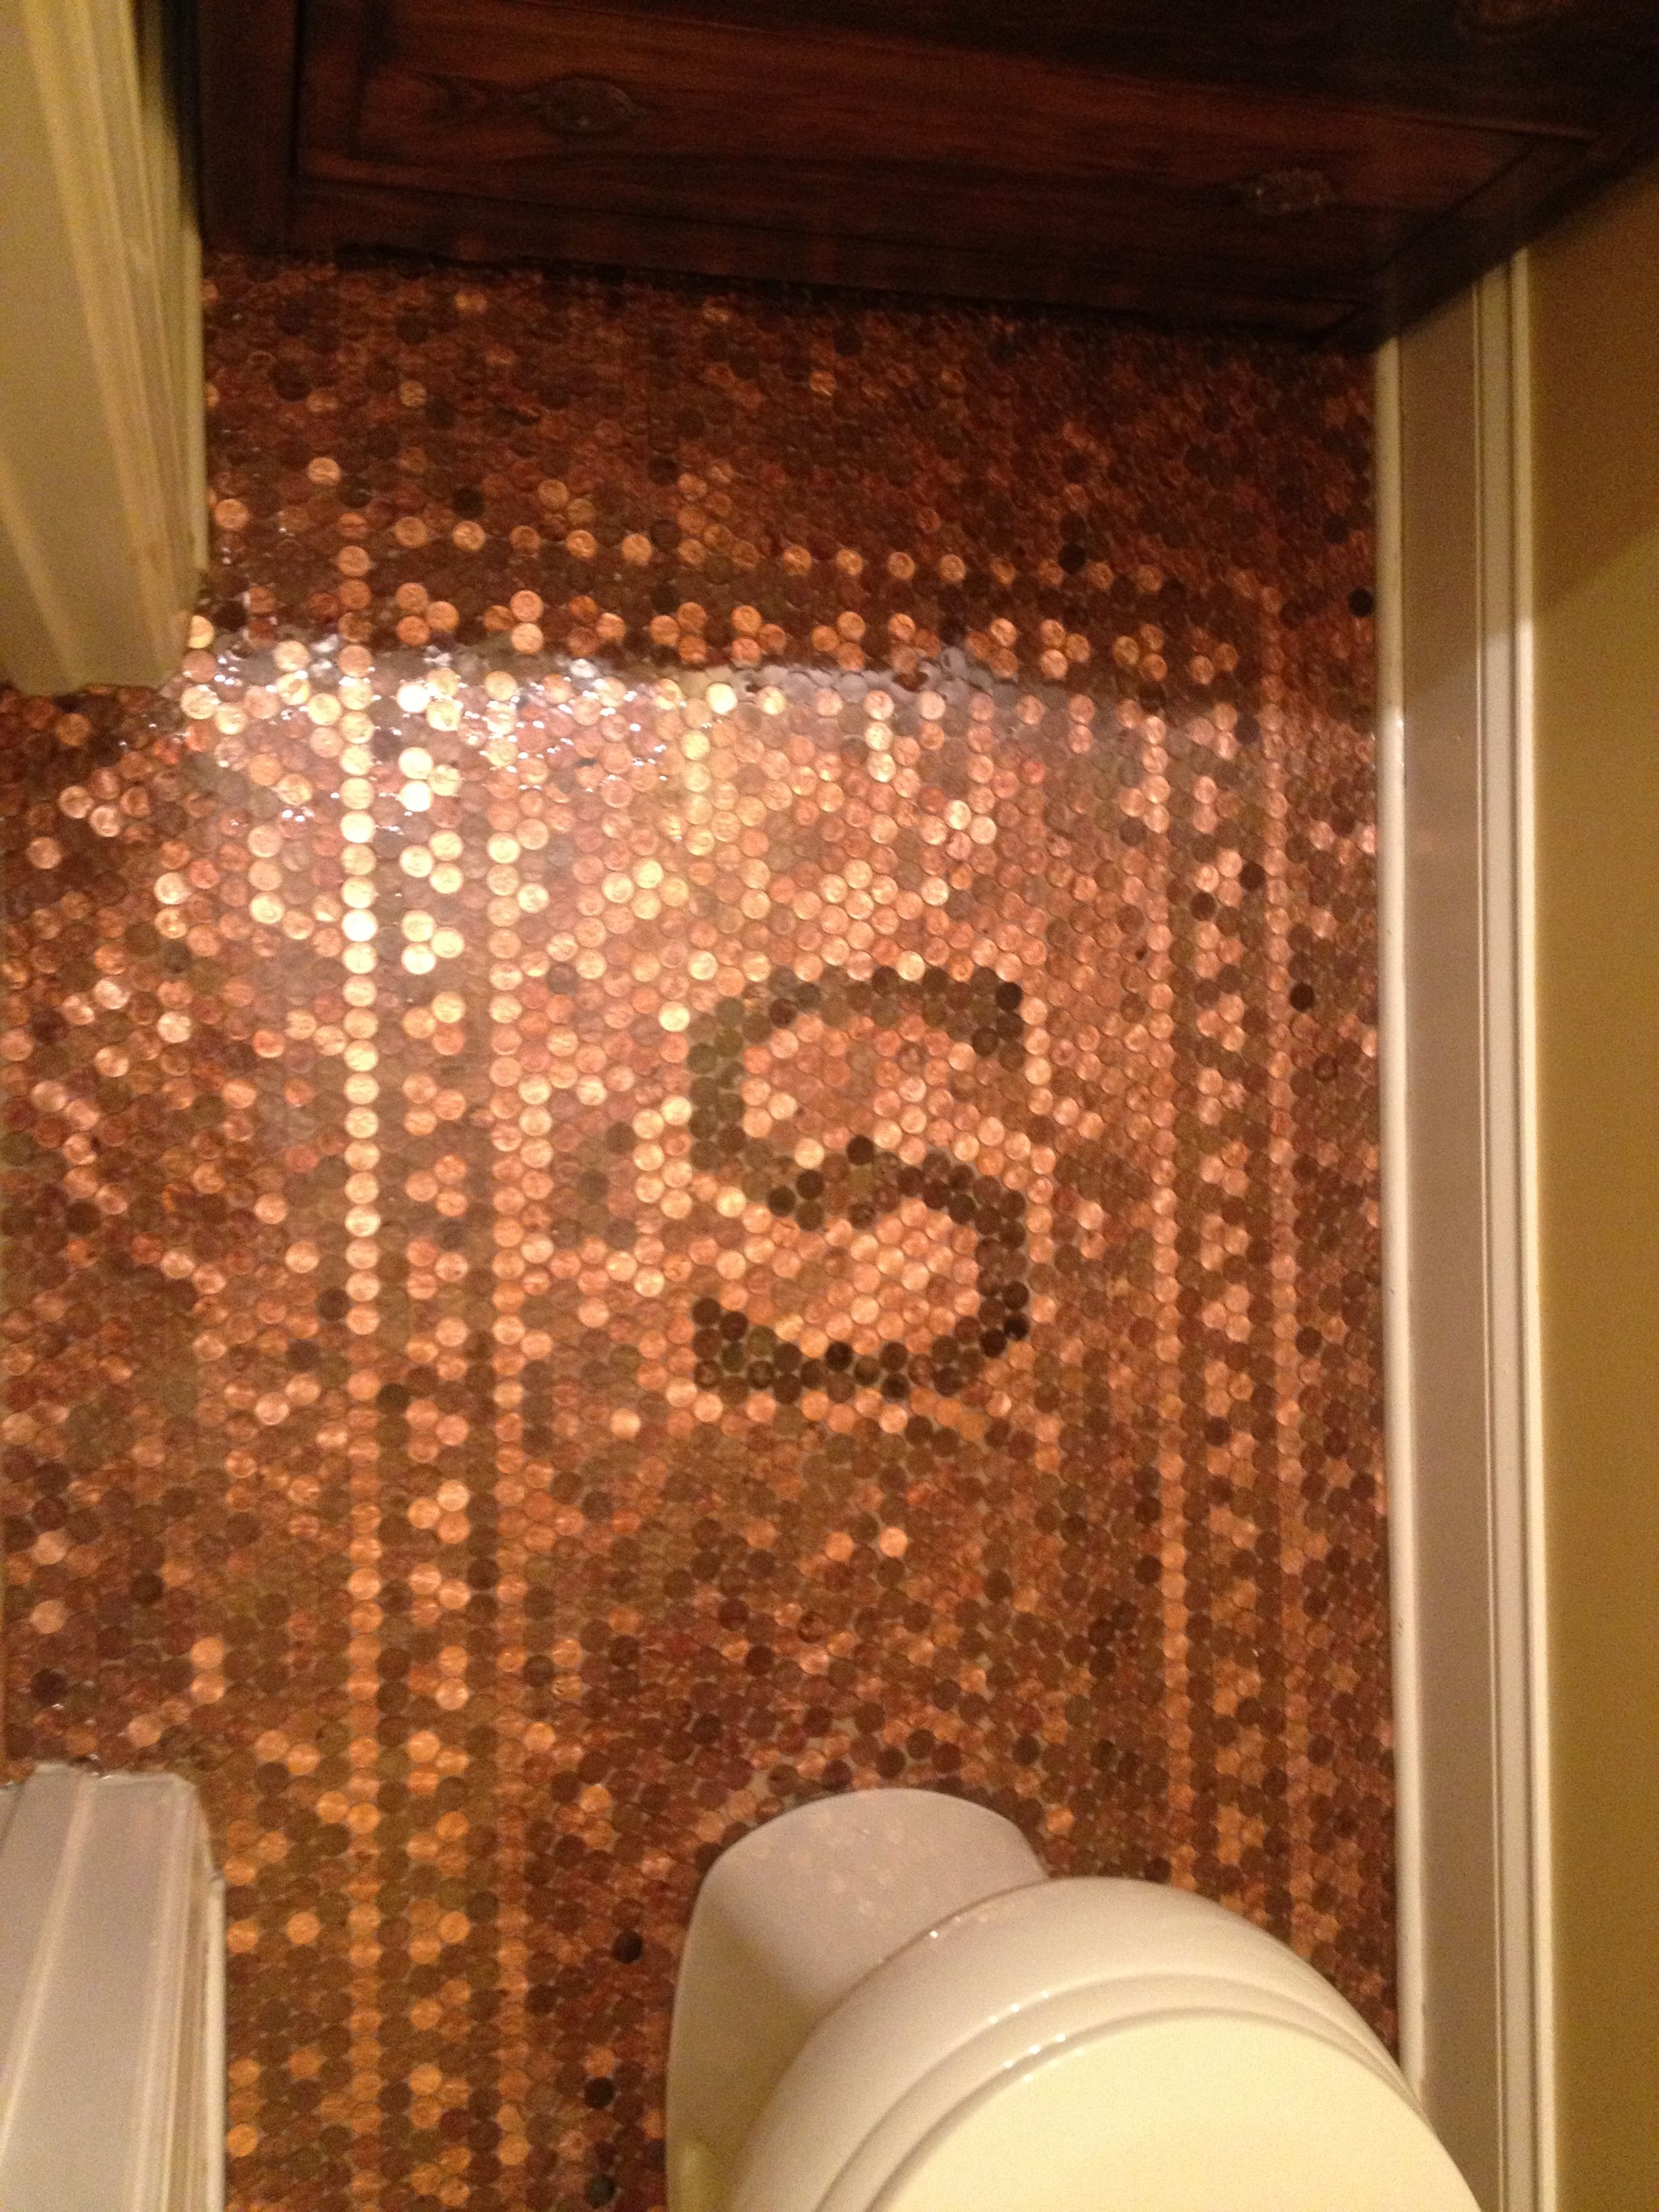 Finished product Penny floor complete with Family Initial.